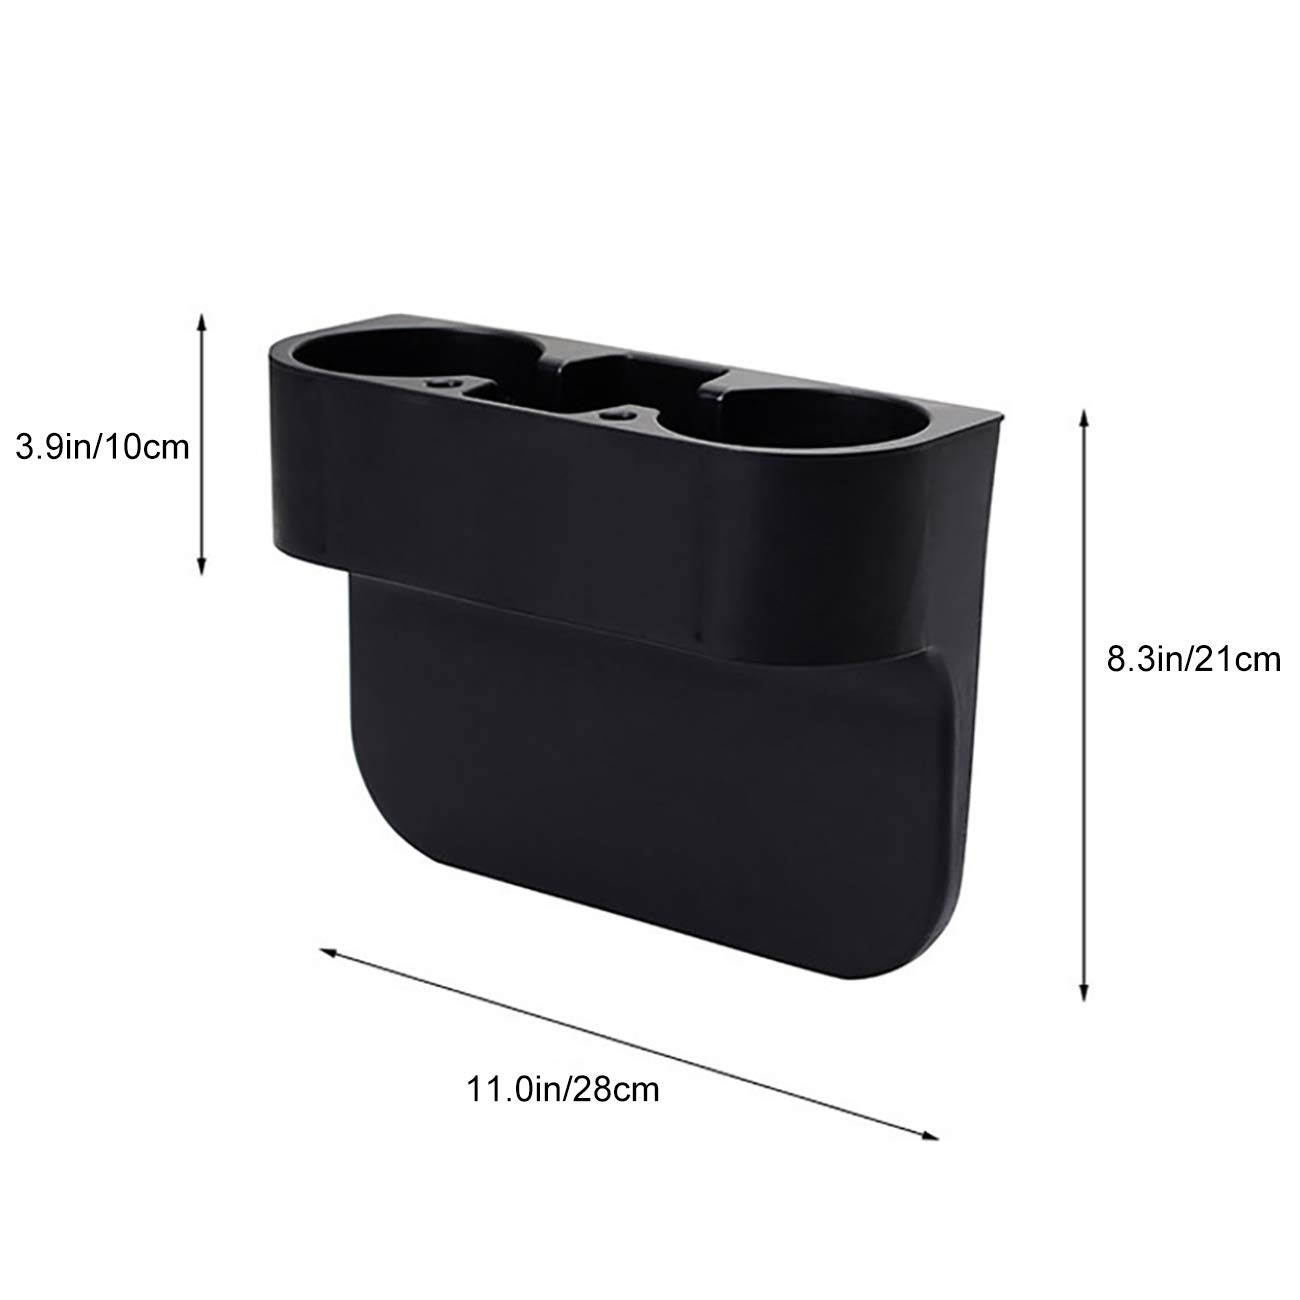 Uheng Premium Car Side Seat Organizer Front Car Console Gap Filler Pockets Drop Caddy Catcher with Cup Holder for Drinks Cellphone Wallet Coin Key with Non-Slip Mat